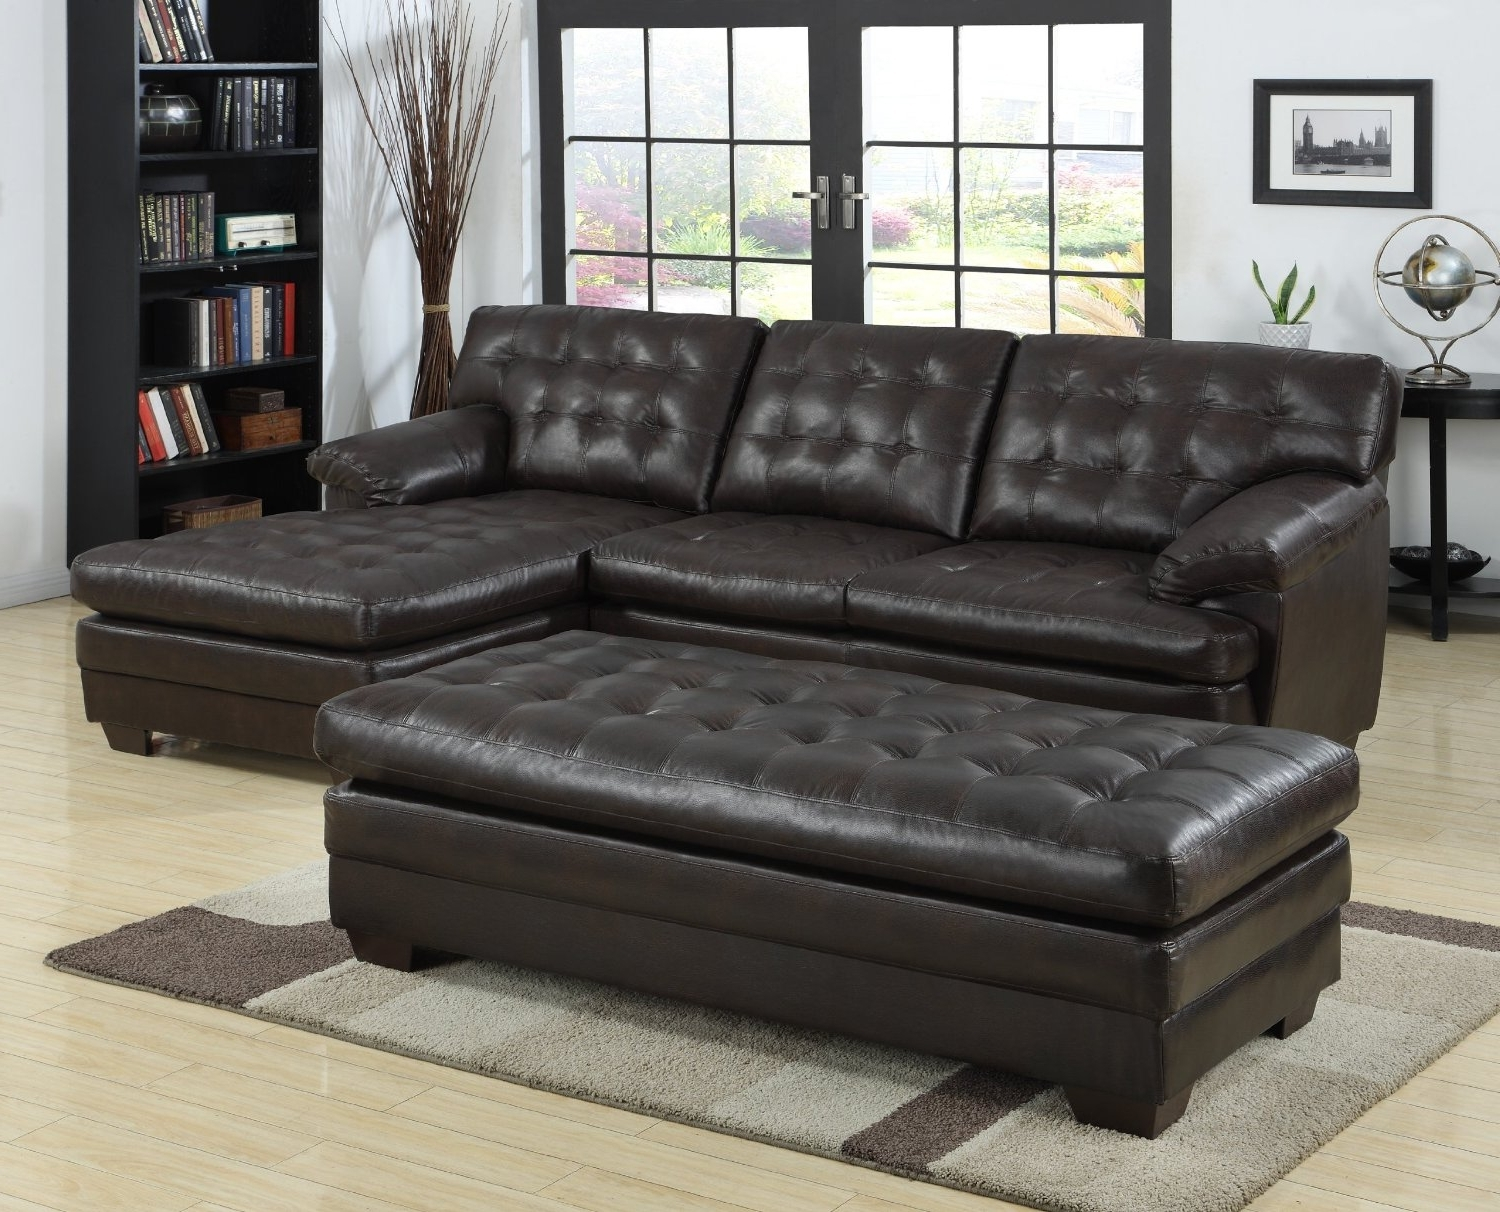 Newest Black Tufted Leather Sectional Sofa With Chaise And Bench Seat Within Leather Chaise Sofas (View 14 of 15)